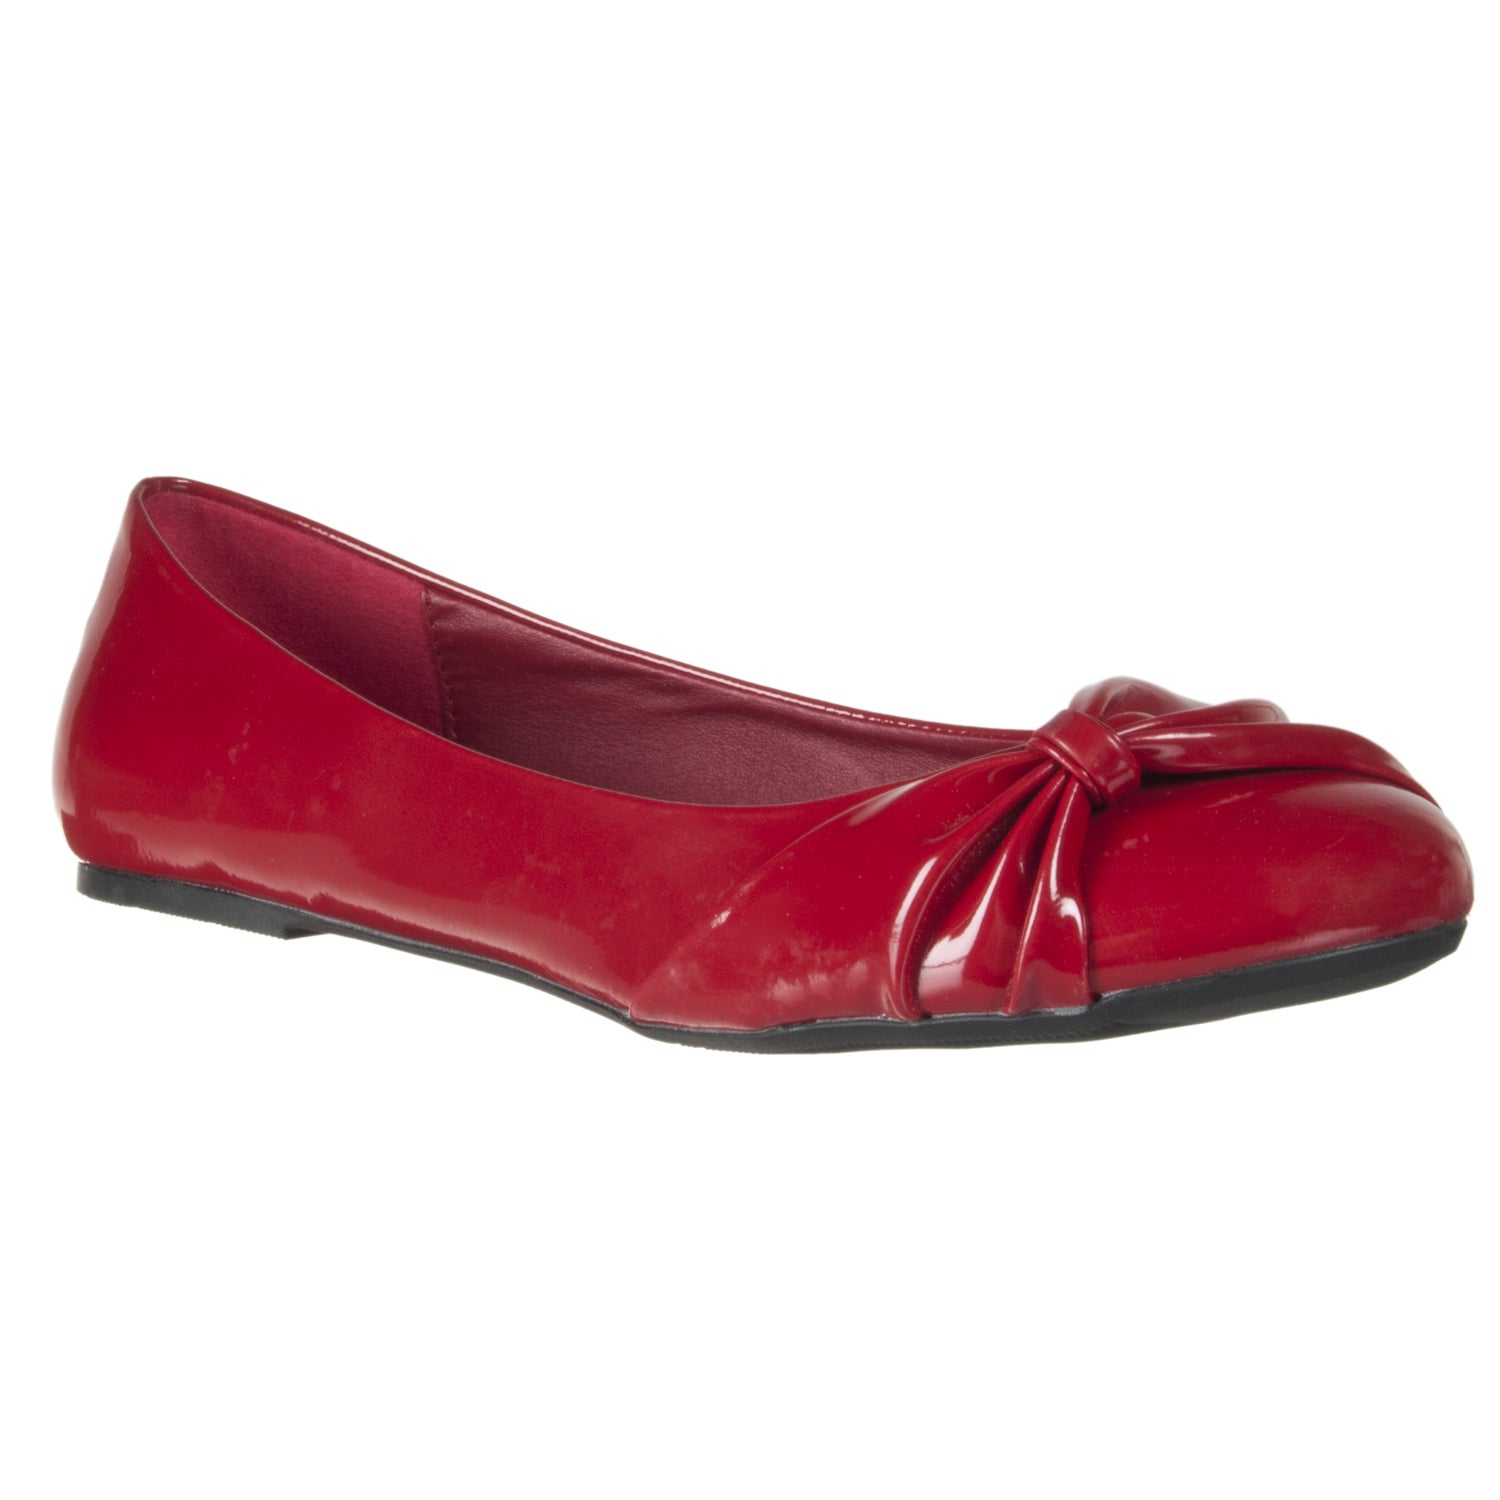 Riverberry Women's Red Bow-detail Ballet Flats - Thumbnail 0